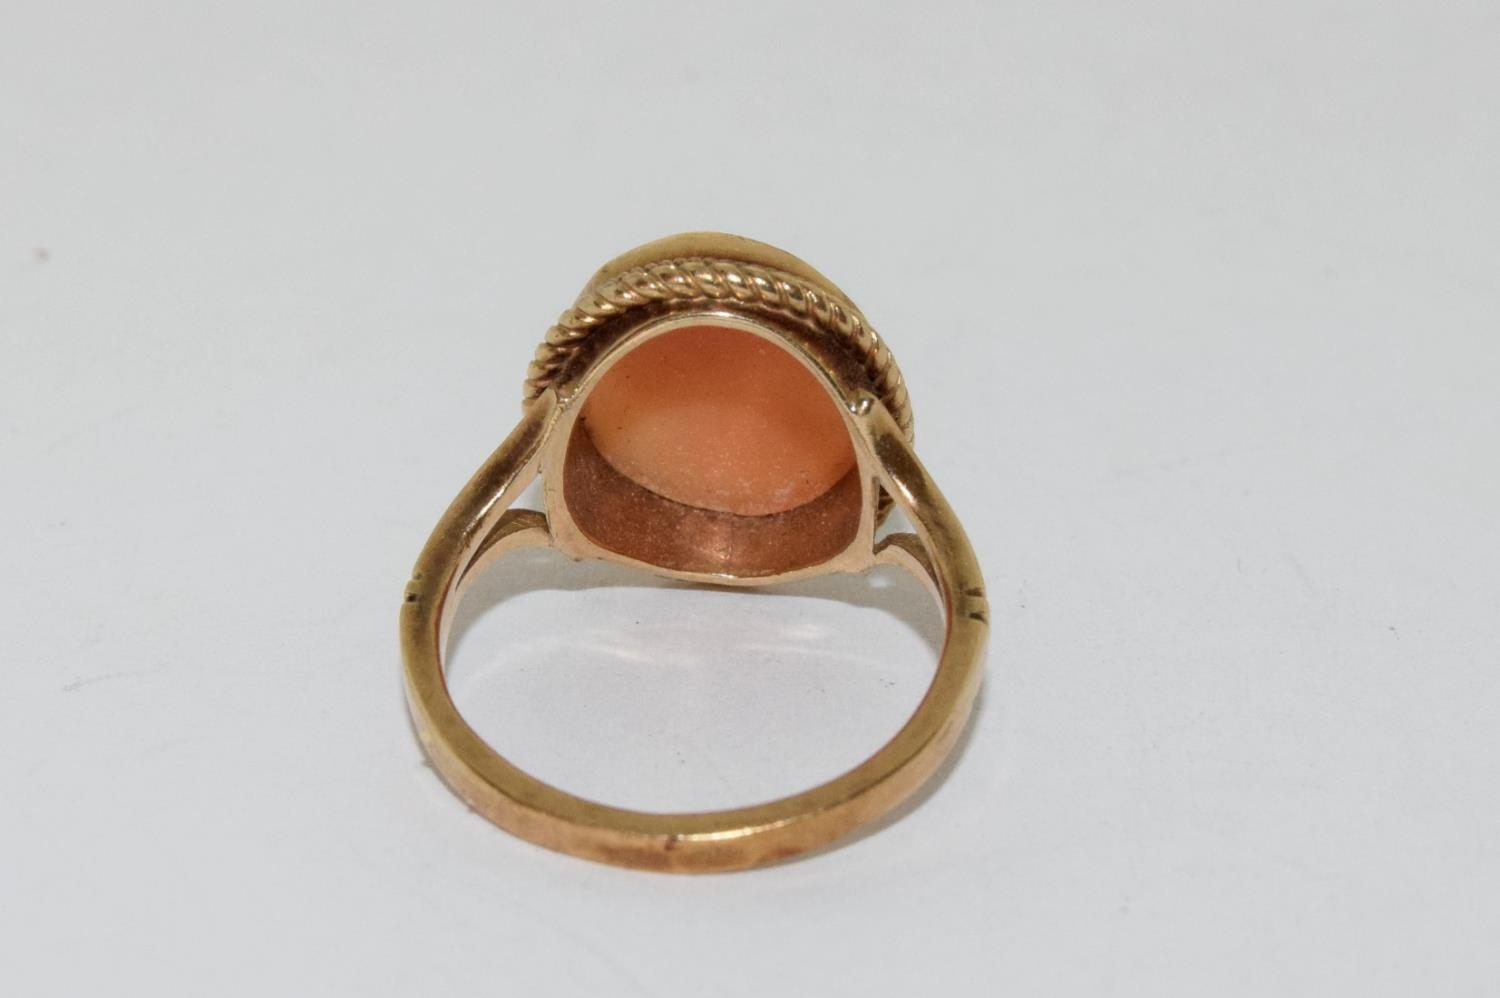 9ct gold ladies cameo ring together with a pair of gold peridot earrings - Image 3 of 5